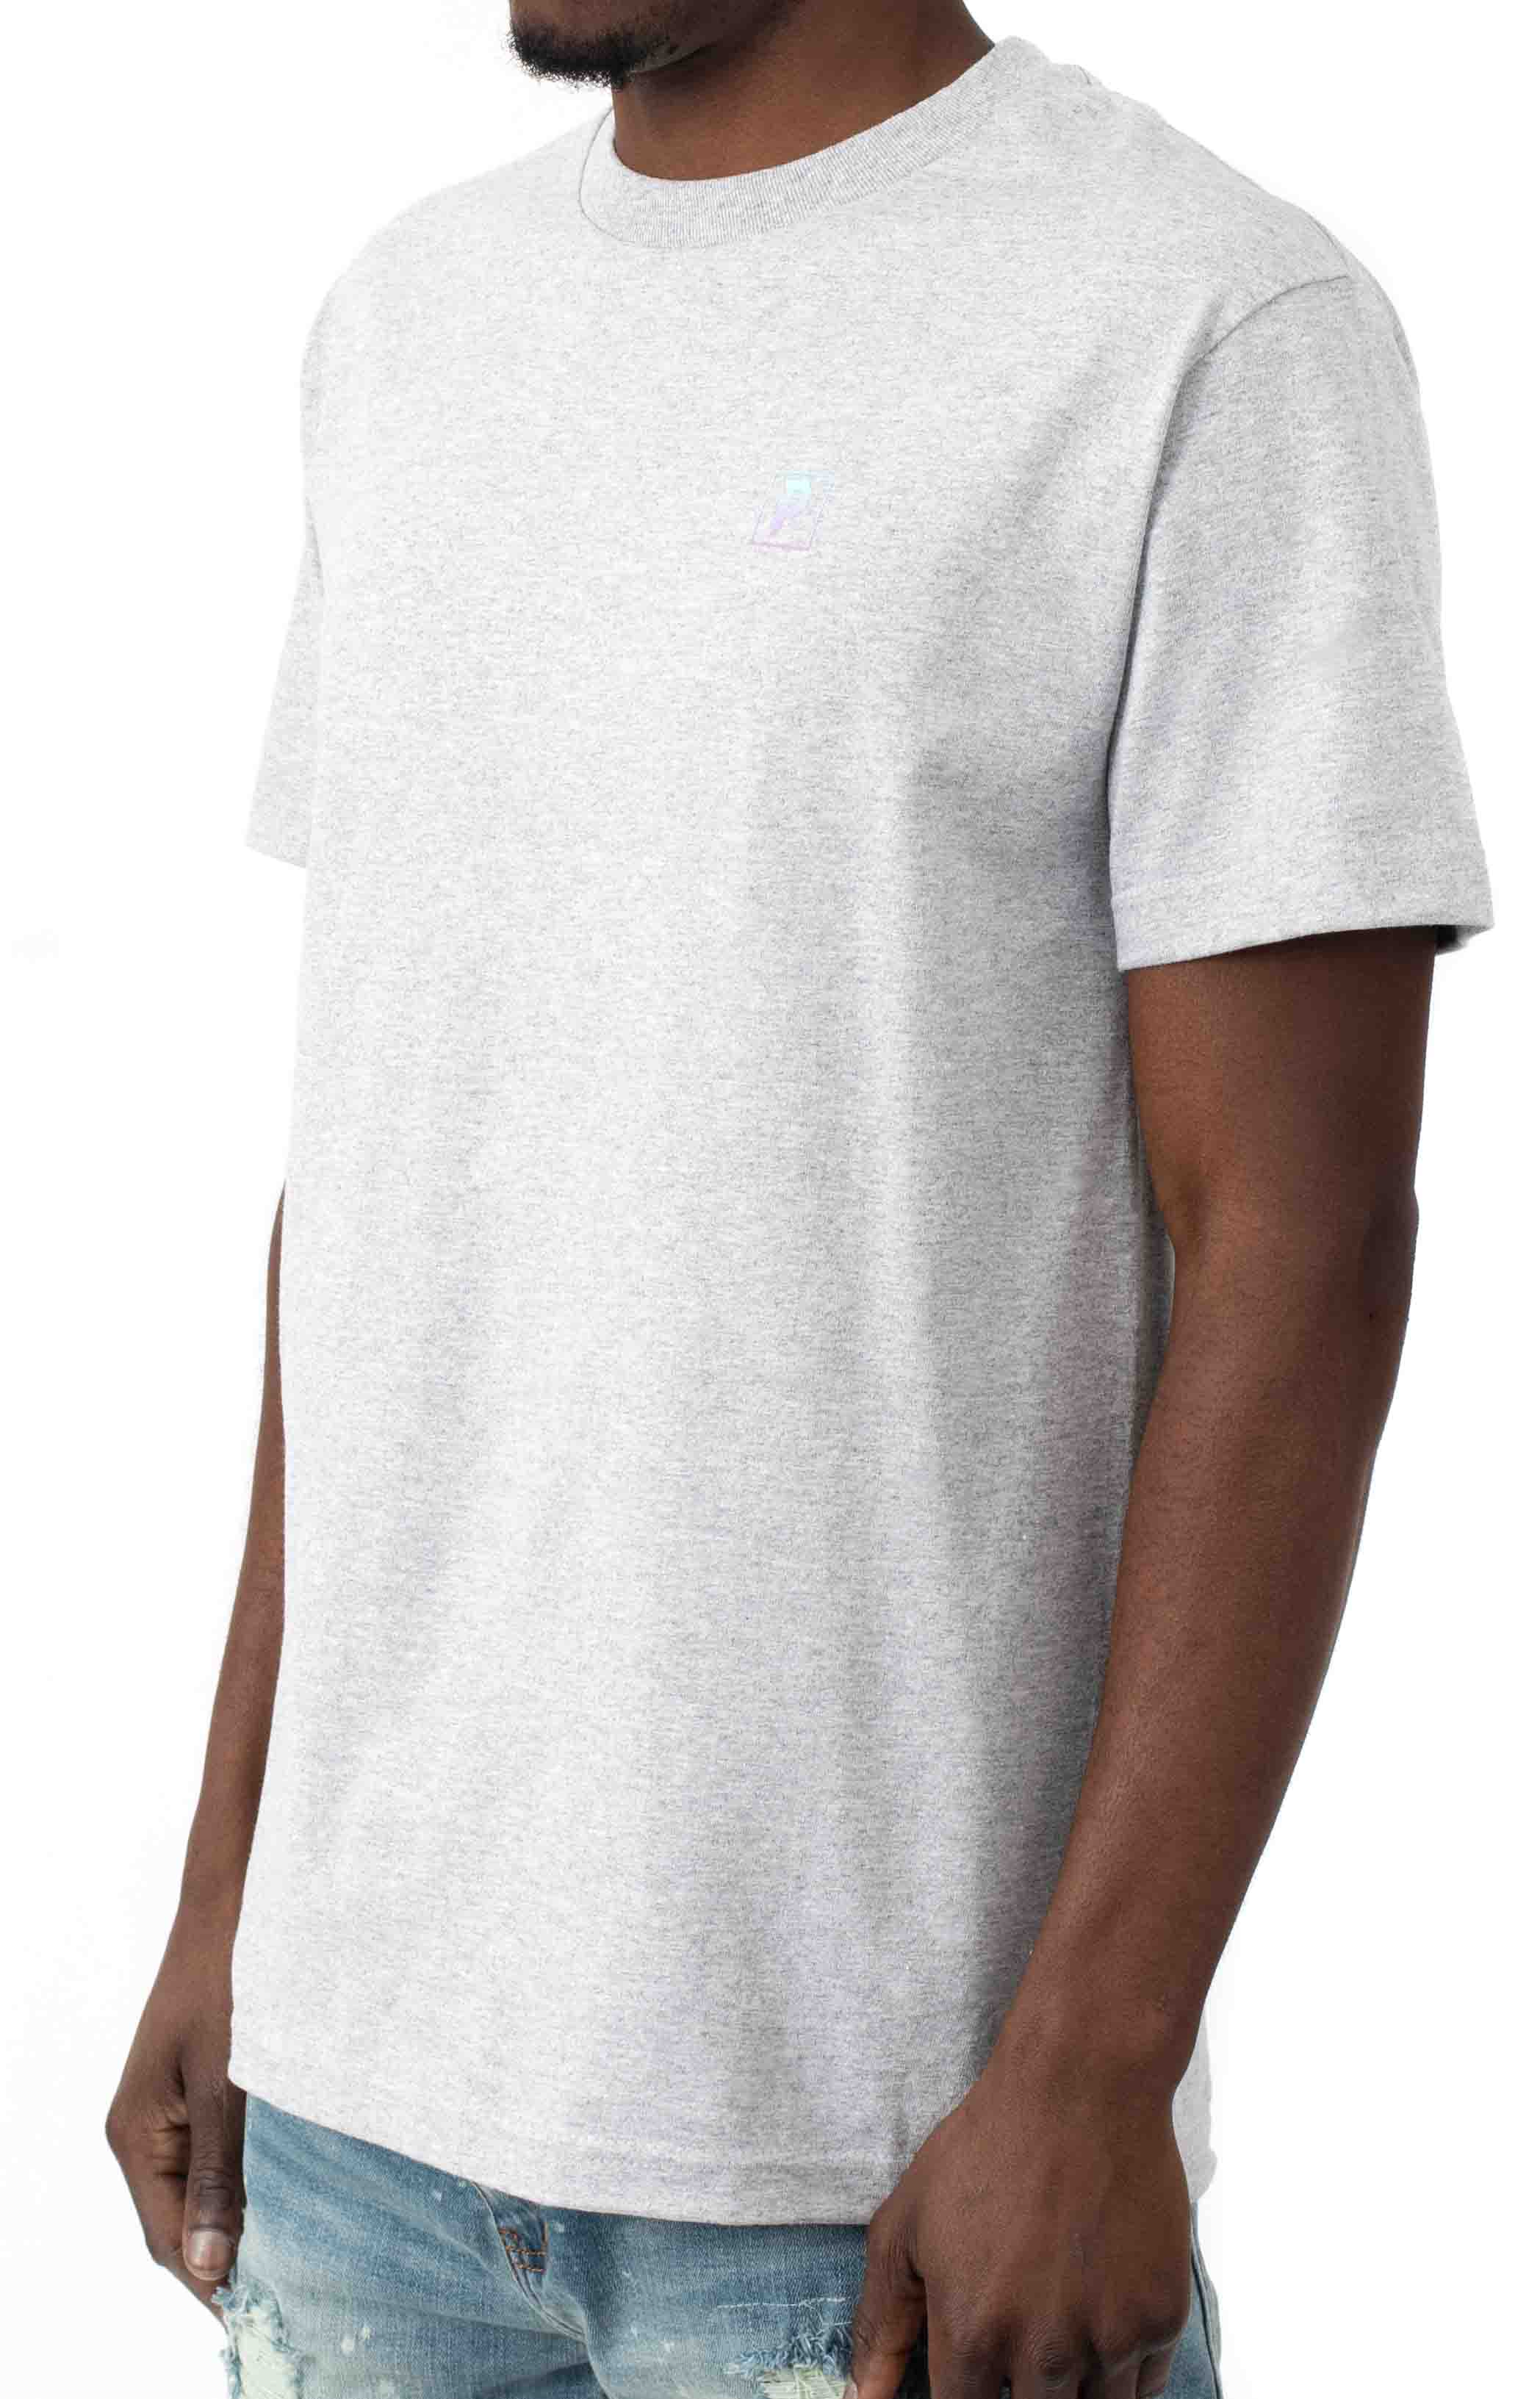 Dirty P Humming T-Shirt - Athletic Heather  3